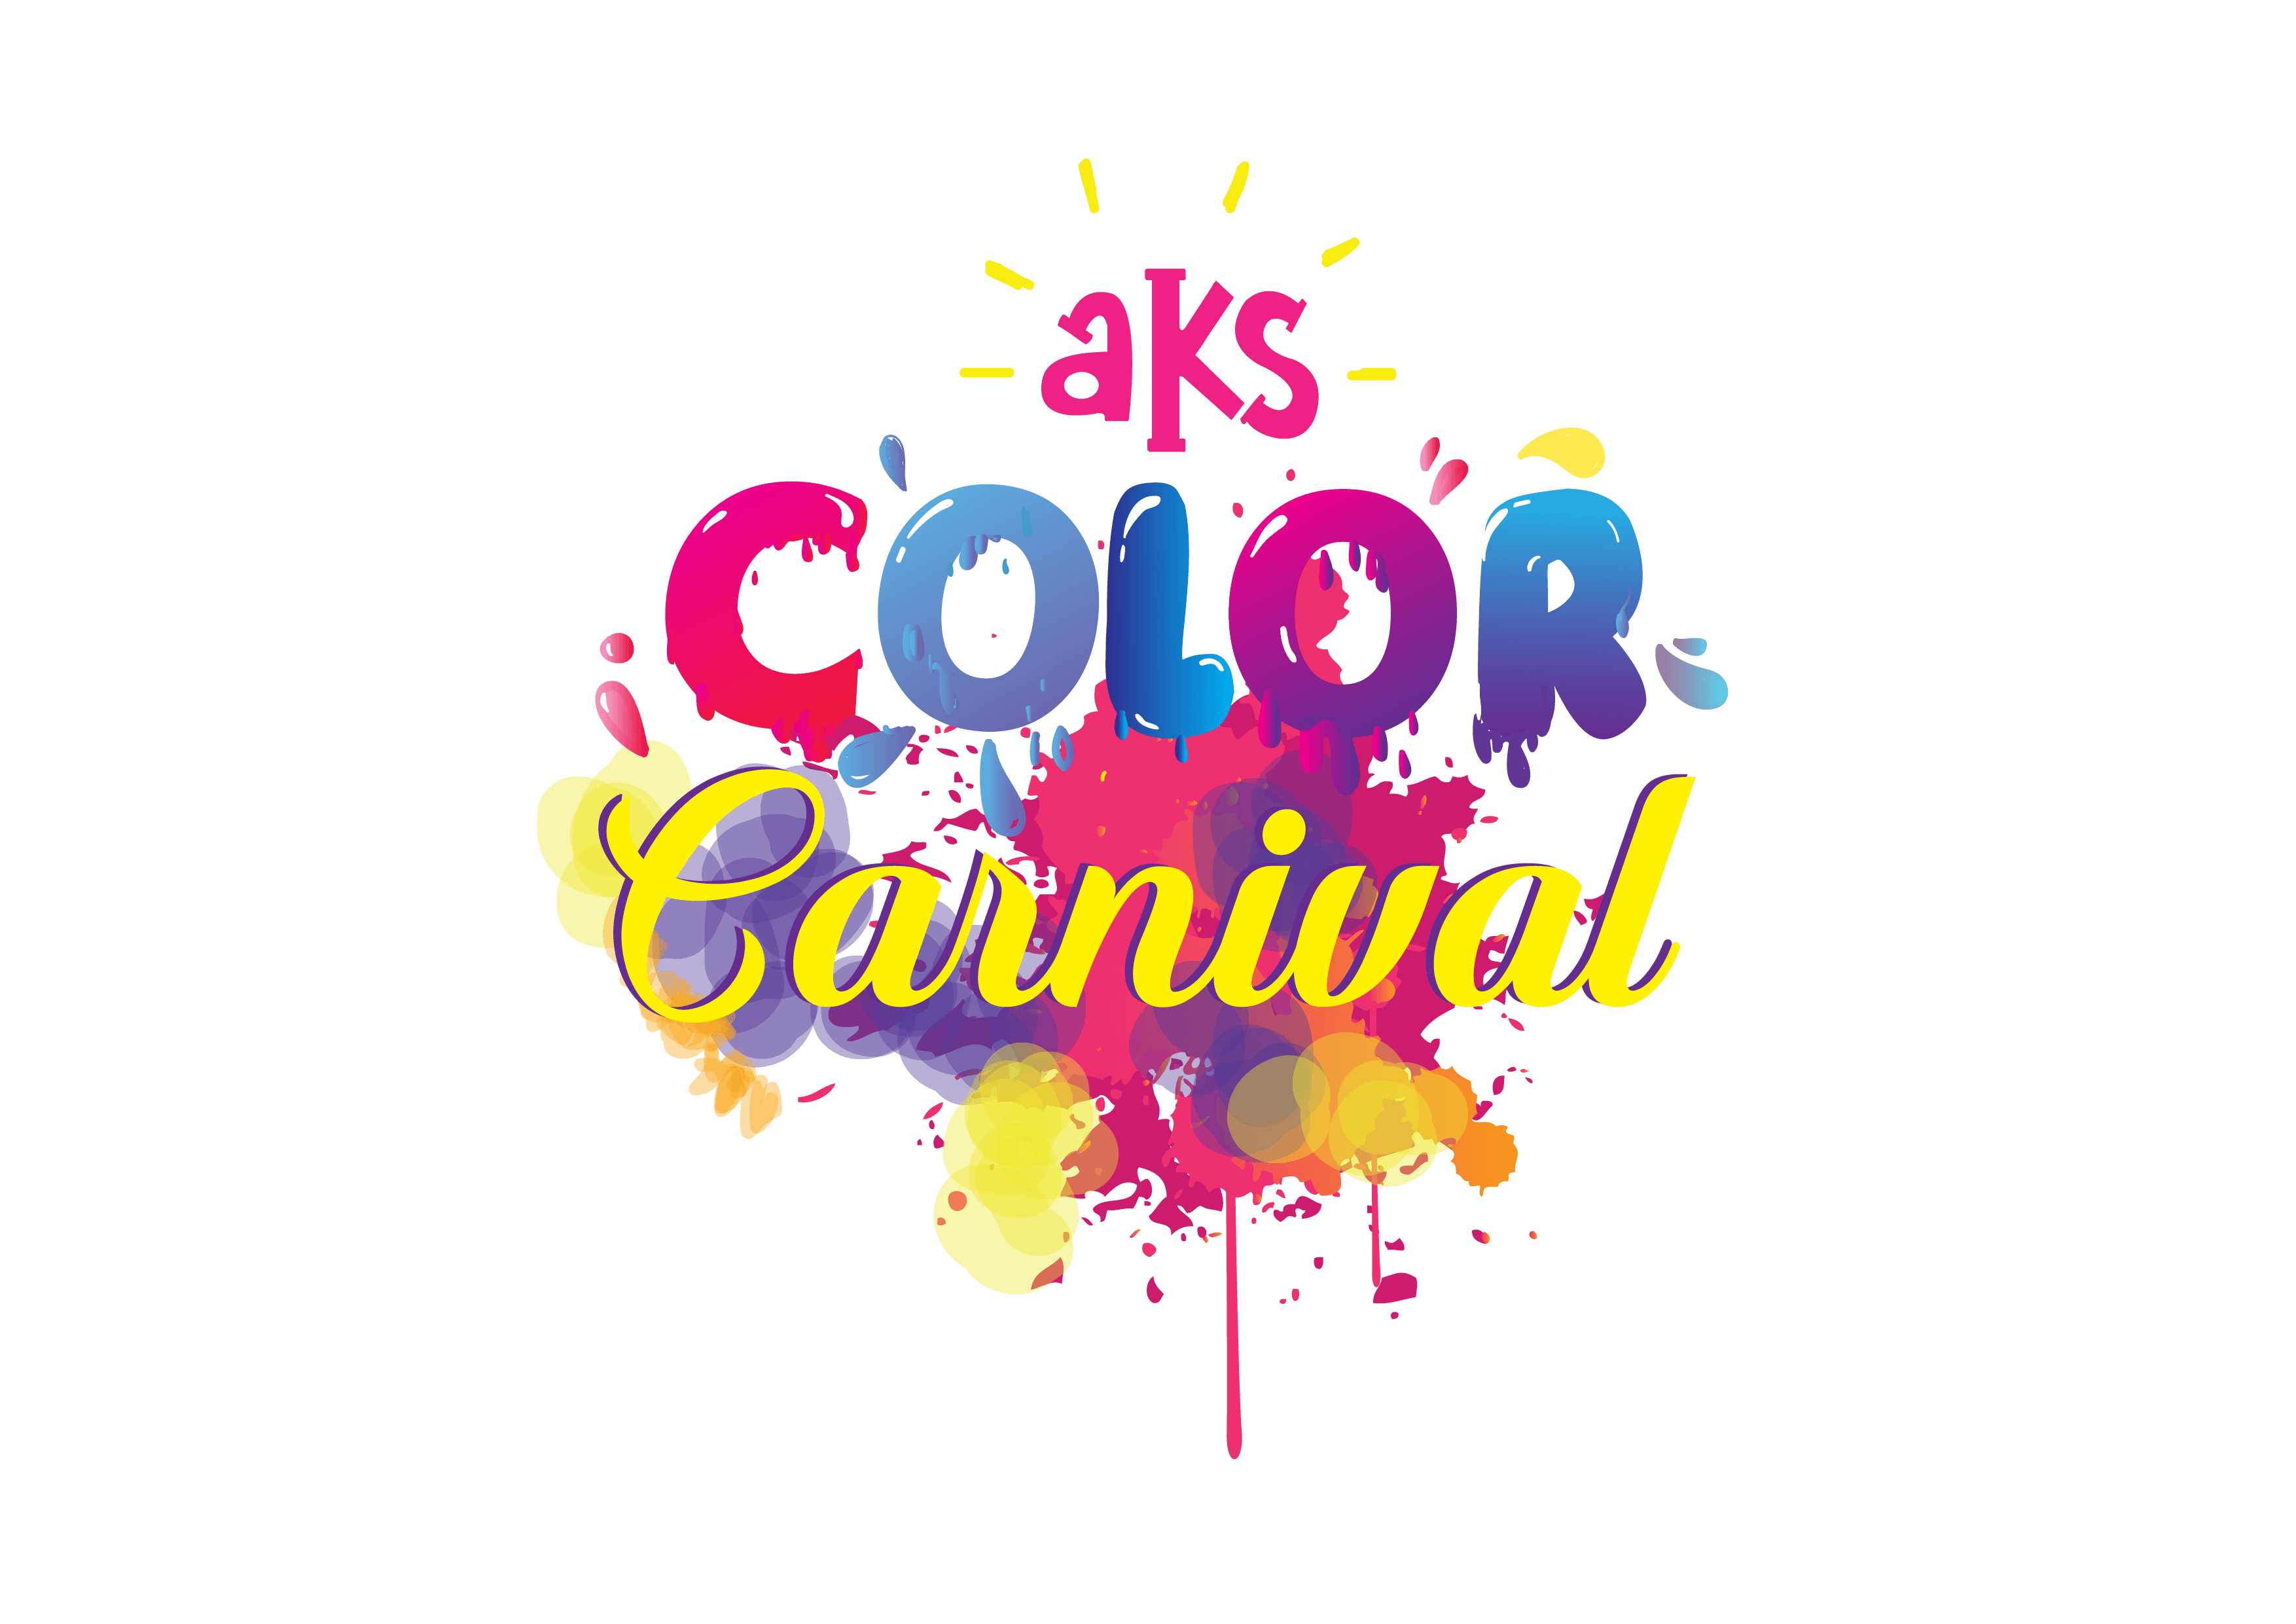 Carnival transparent text. Aks colour everything you